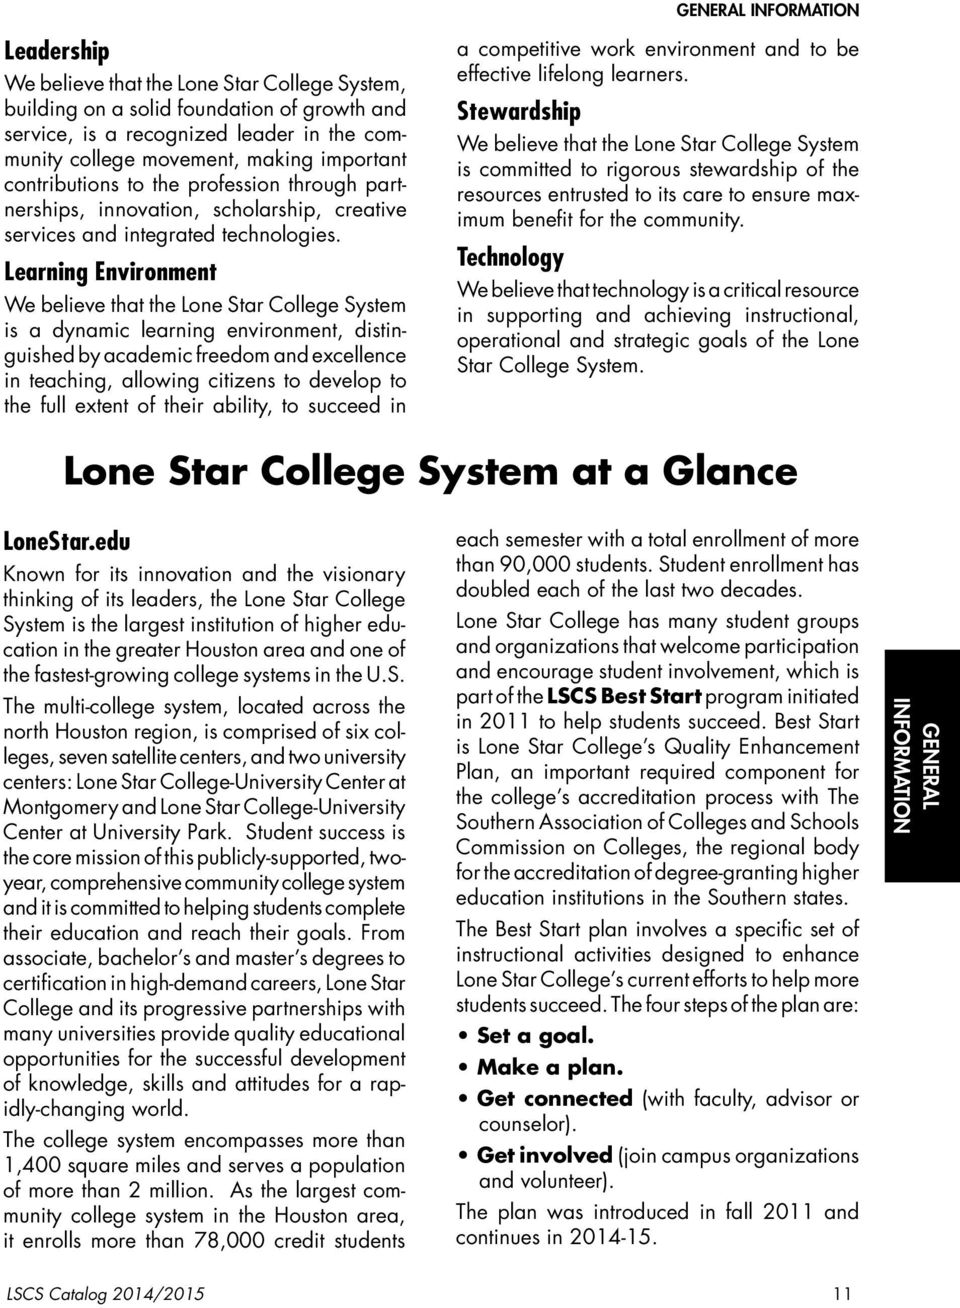 Learning Environment We believe that the Lone Star College System is a dynamic learning environment, distinguished by academic freedom and excellence in teaching, allowing citizens to develop to the